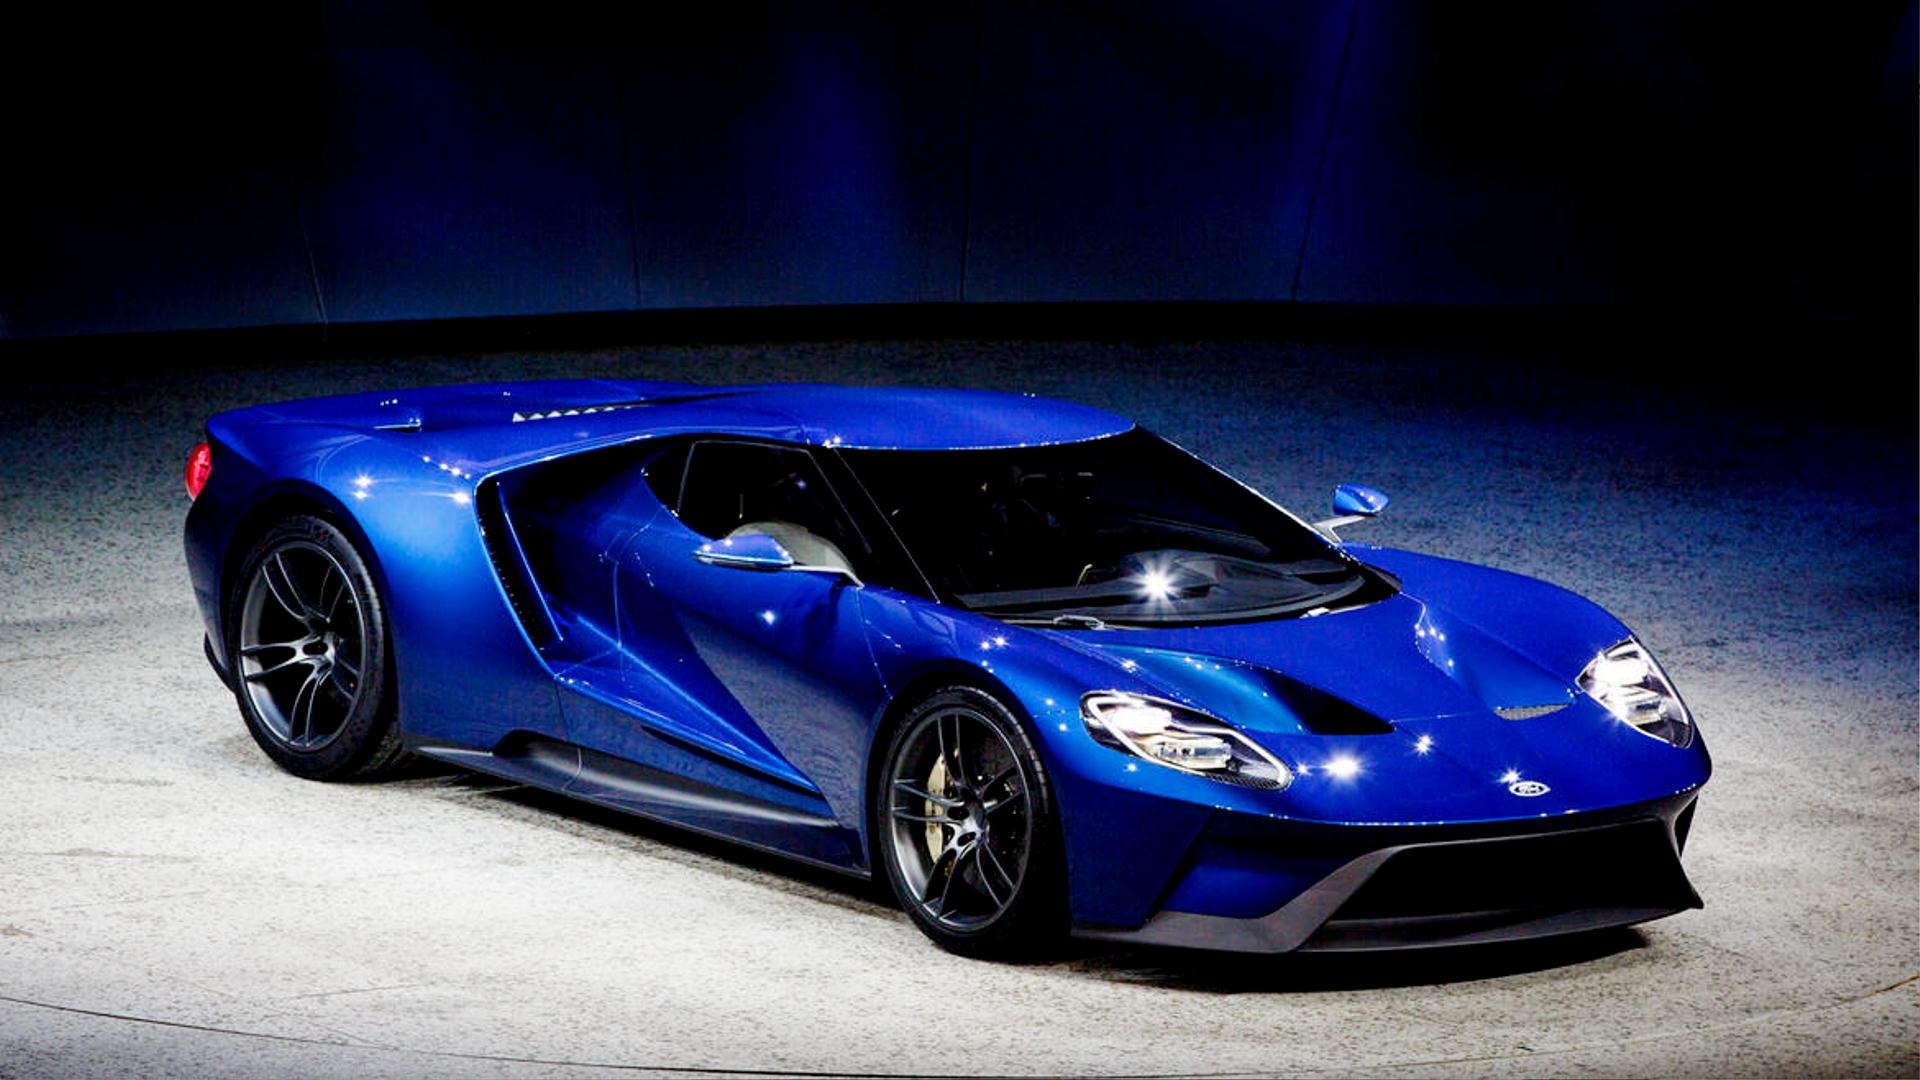 2016 Ford GT Wallpaper 1920x1080   image 290 1920x1080